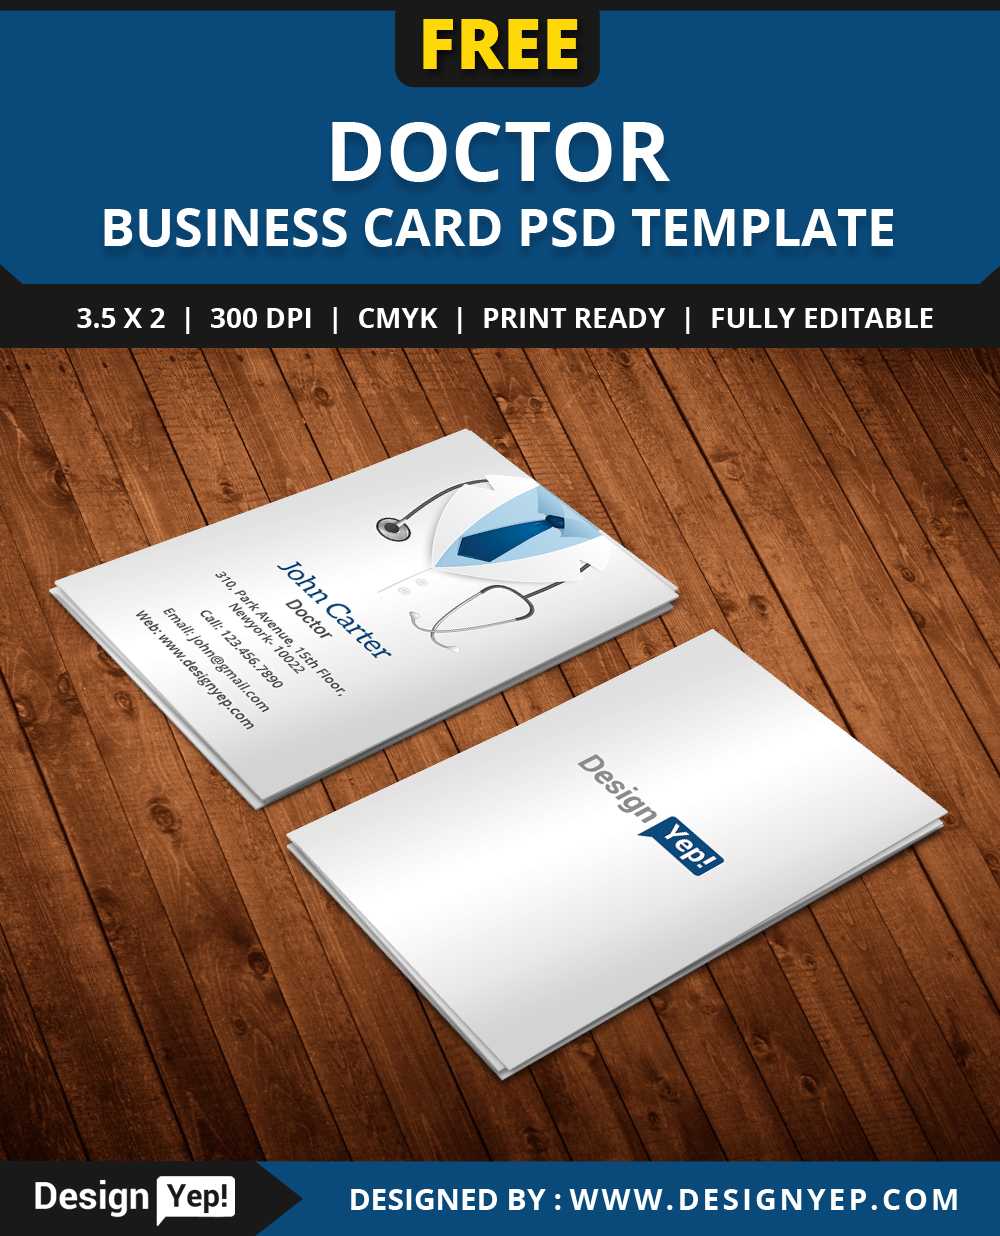 Free doctor business card template psd on behance flashek Images